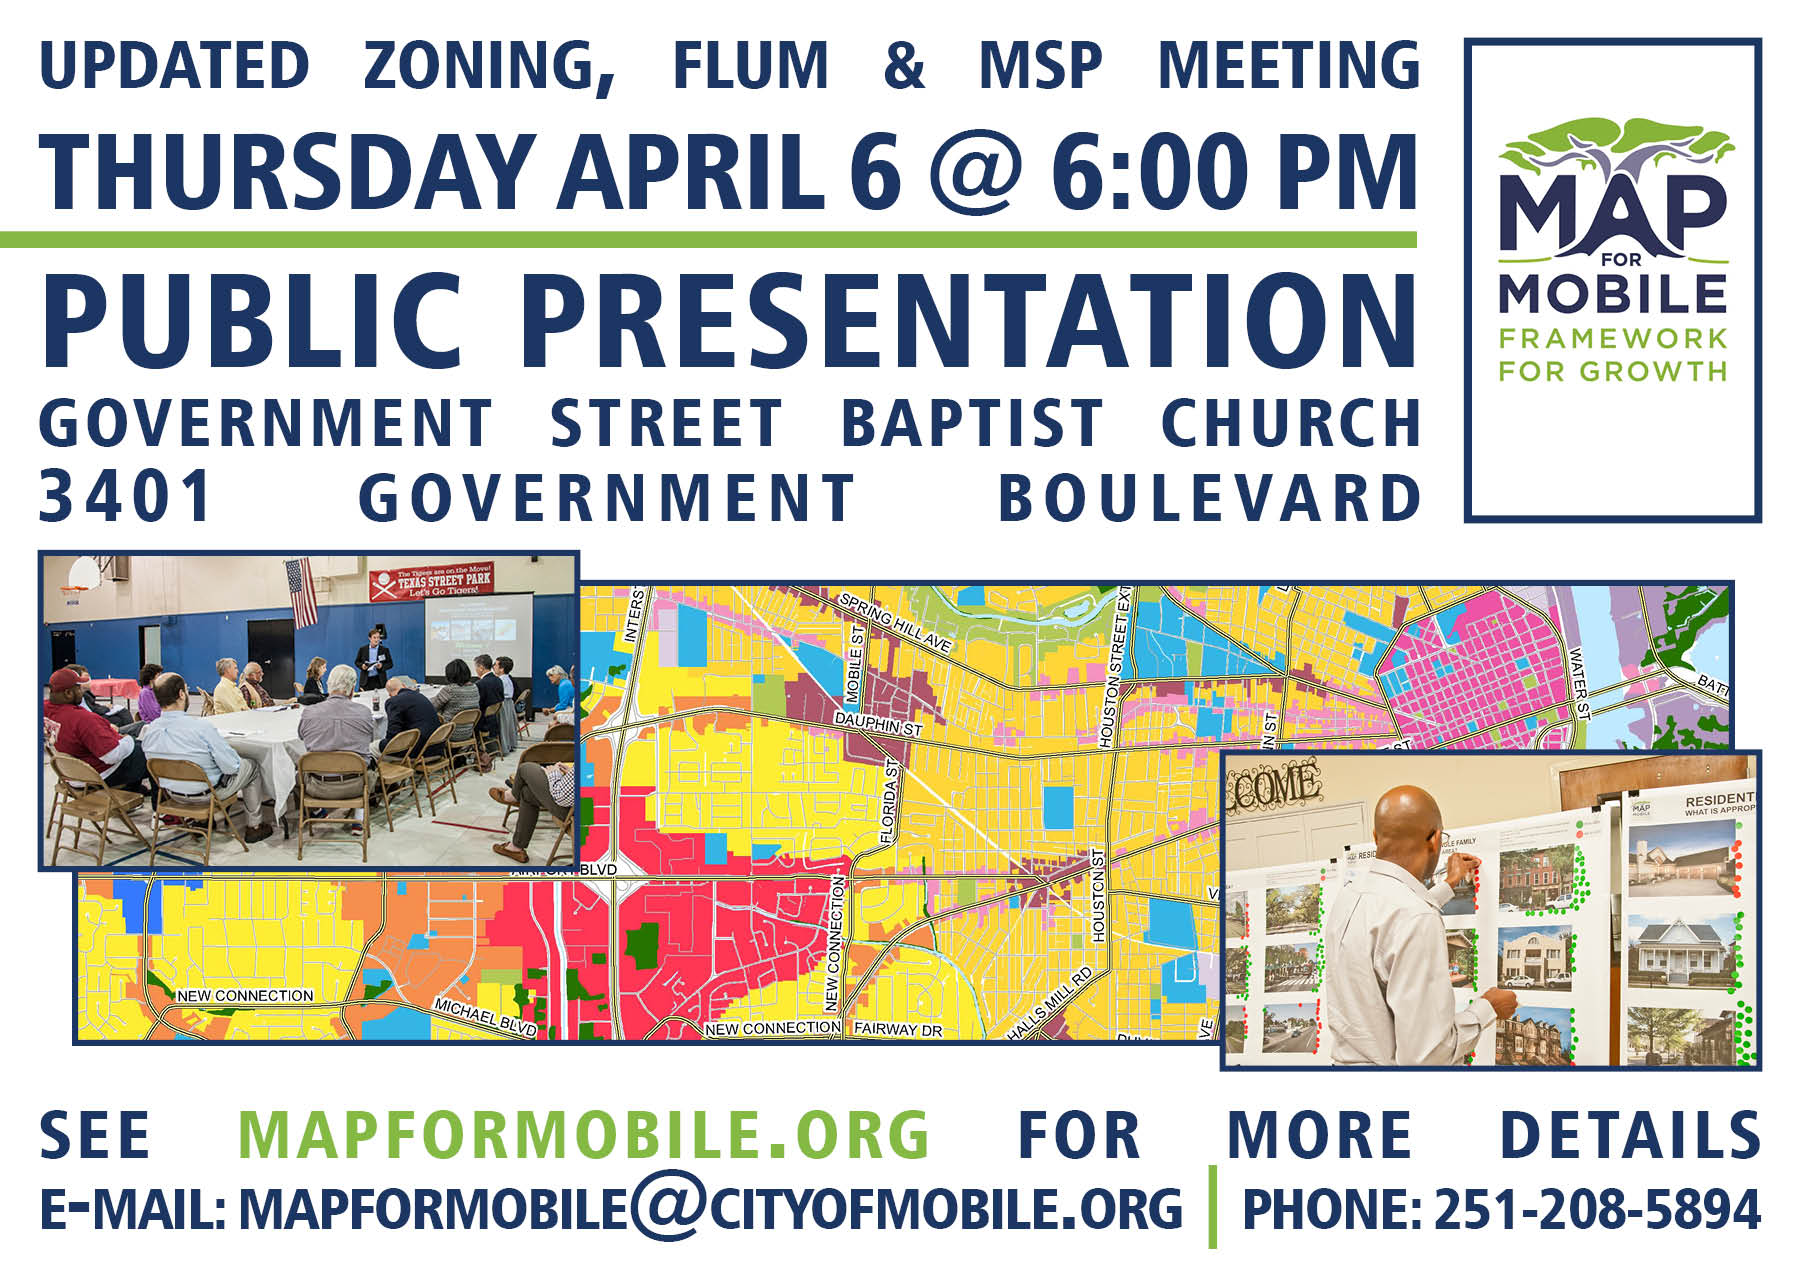 Updated Zoning, FLUM & MSP Meeting